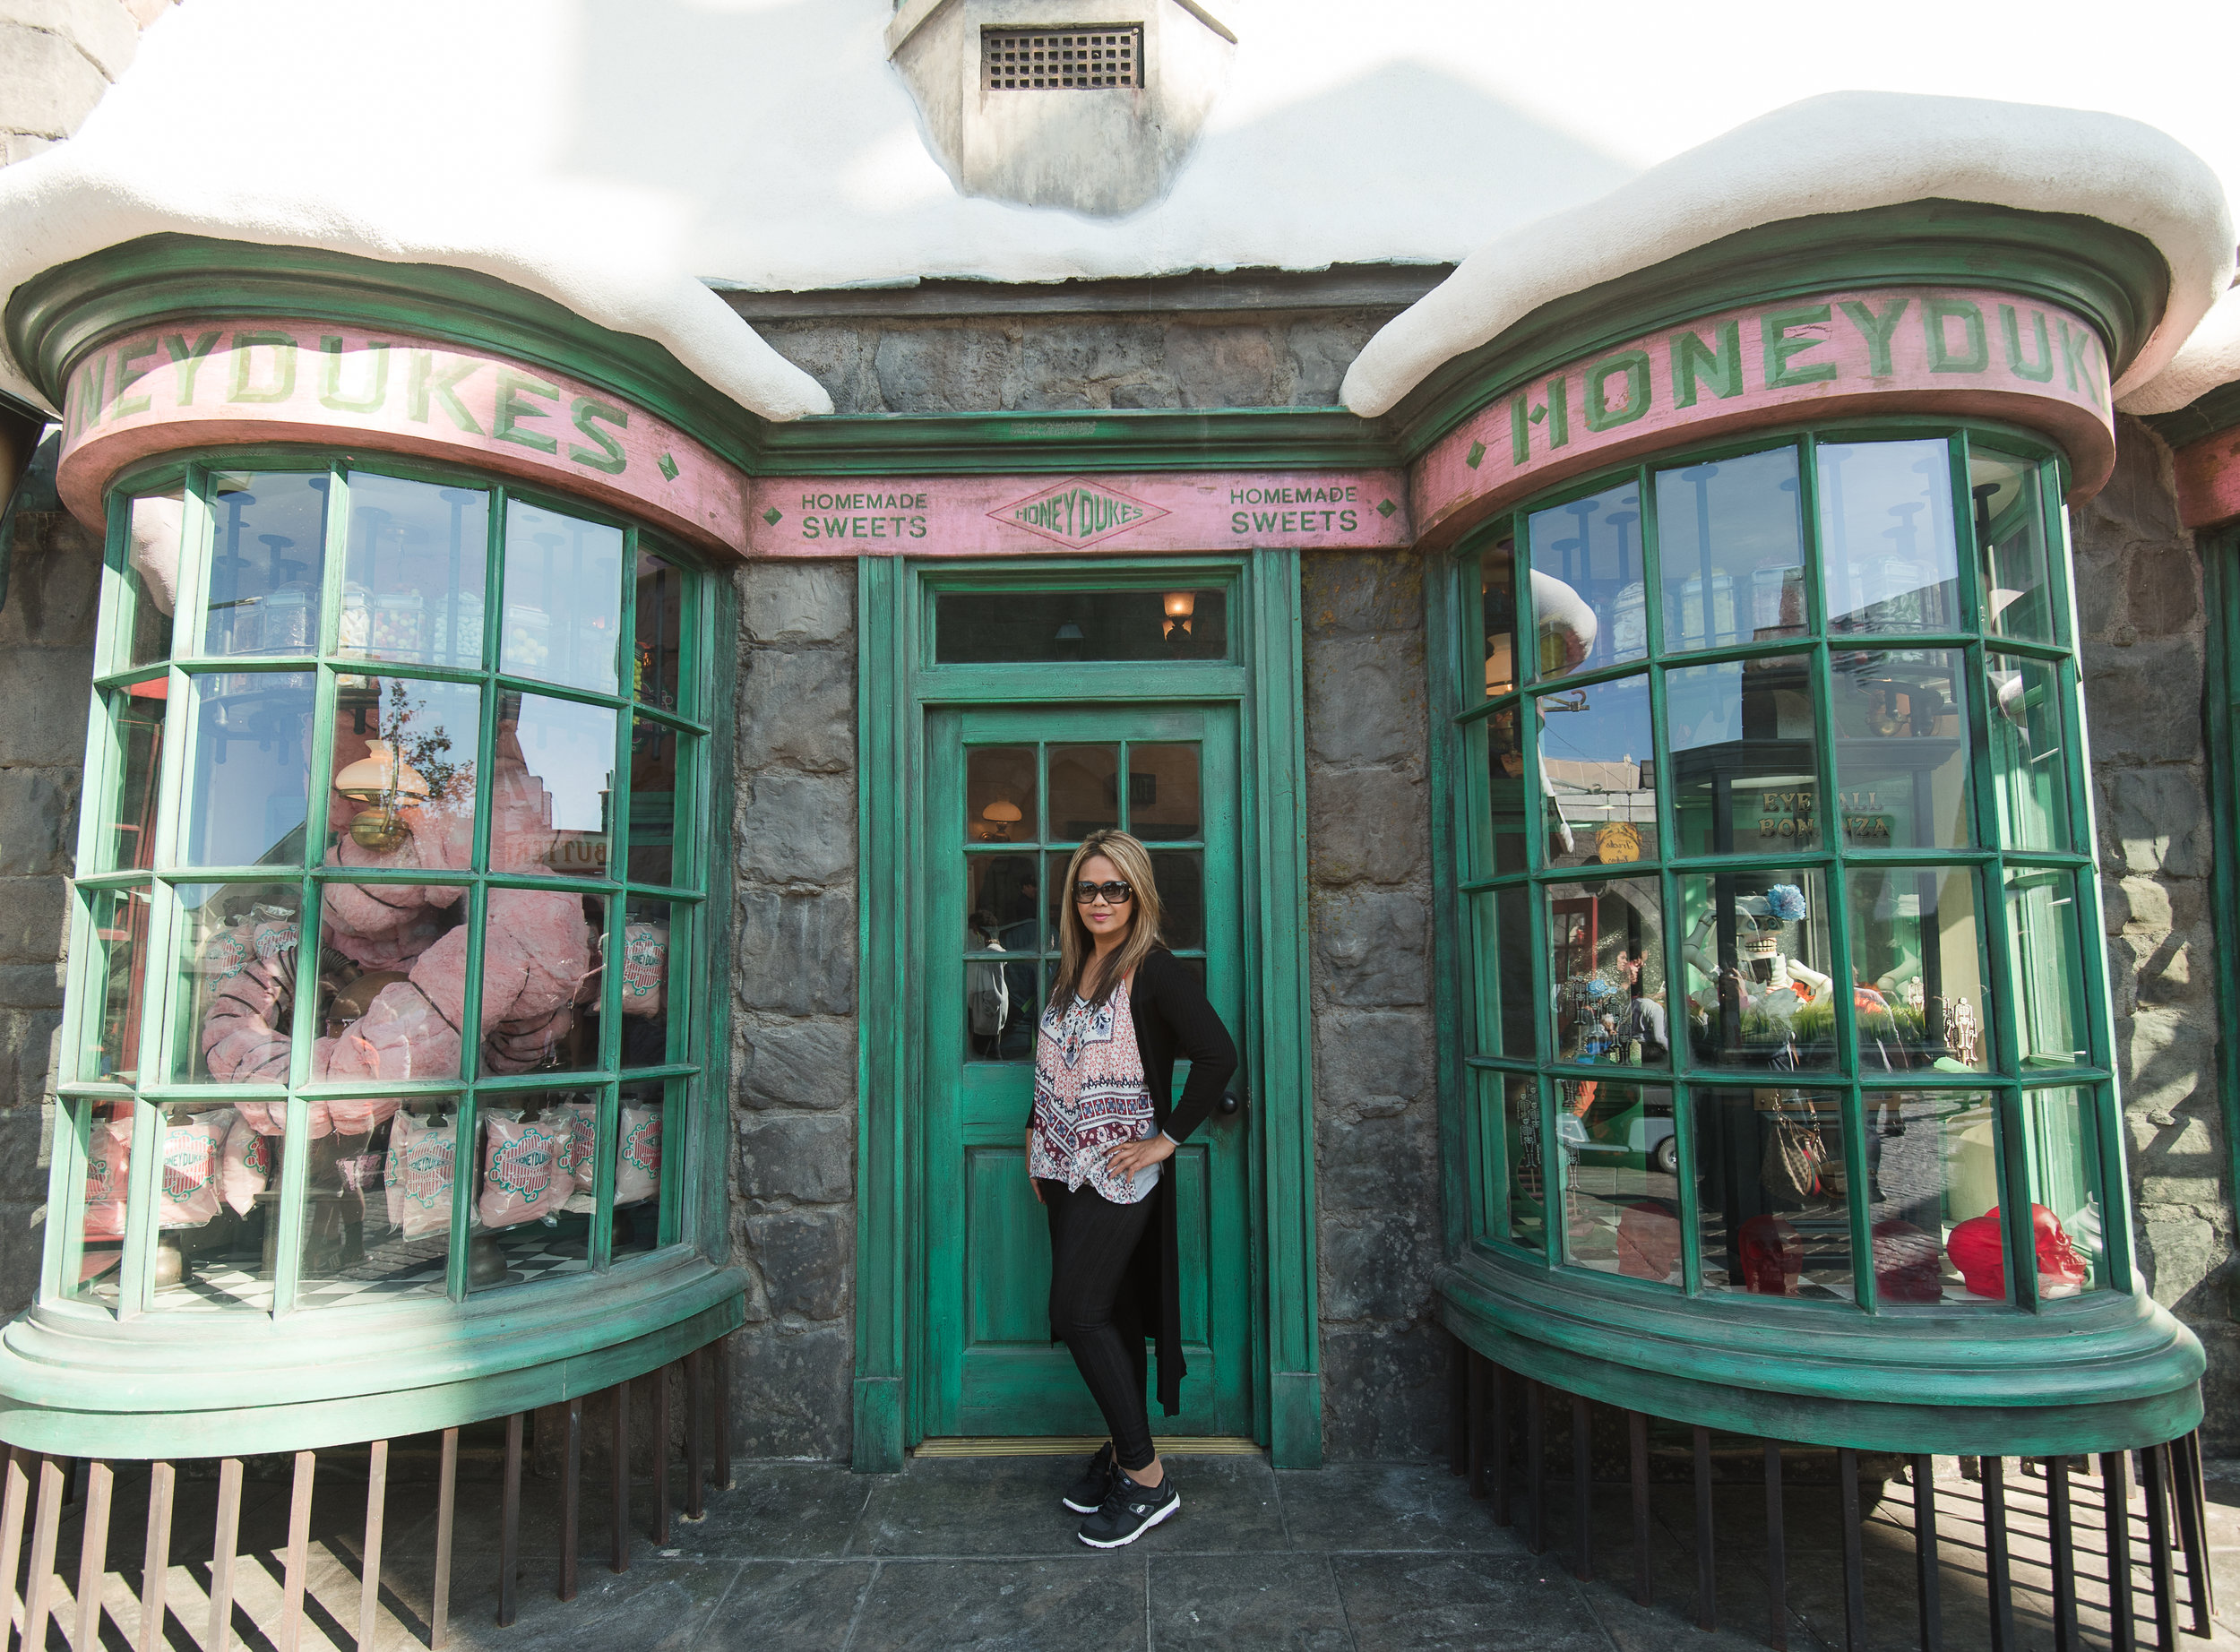 Owner of Jade Min Photography posing in front of Honeydukes at Harry Potter World, Universal Studios Hollywood.